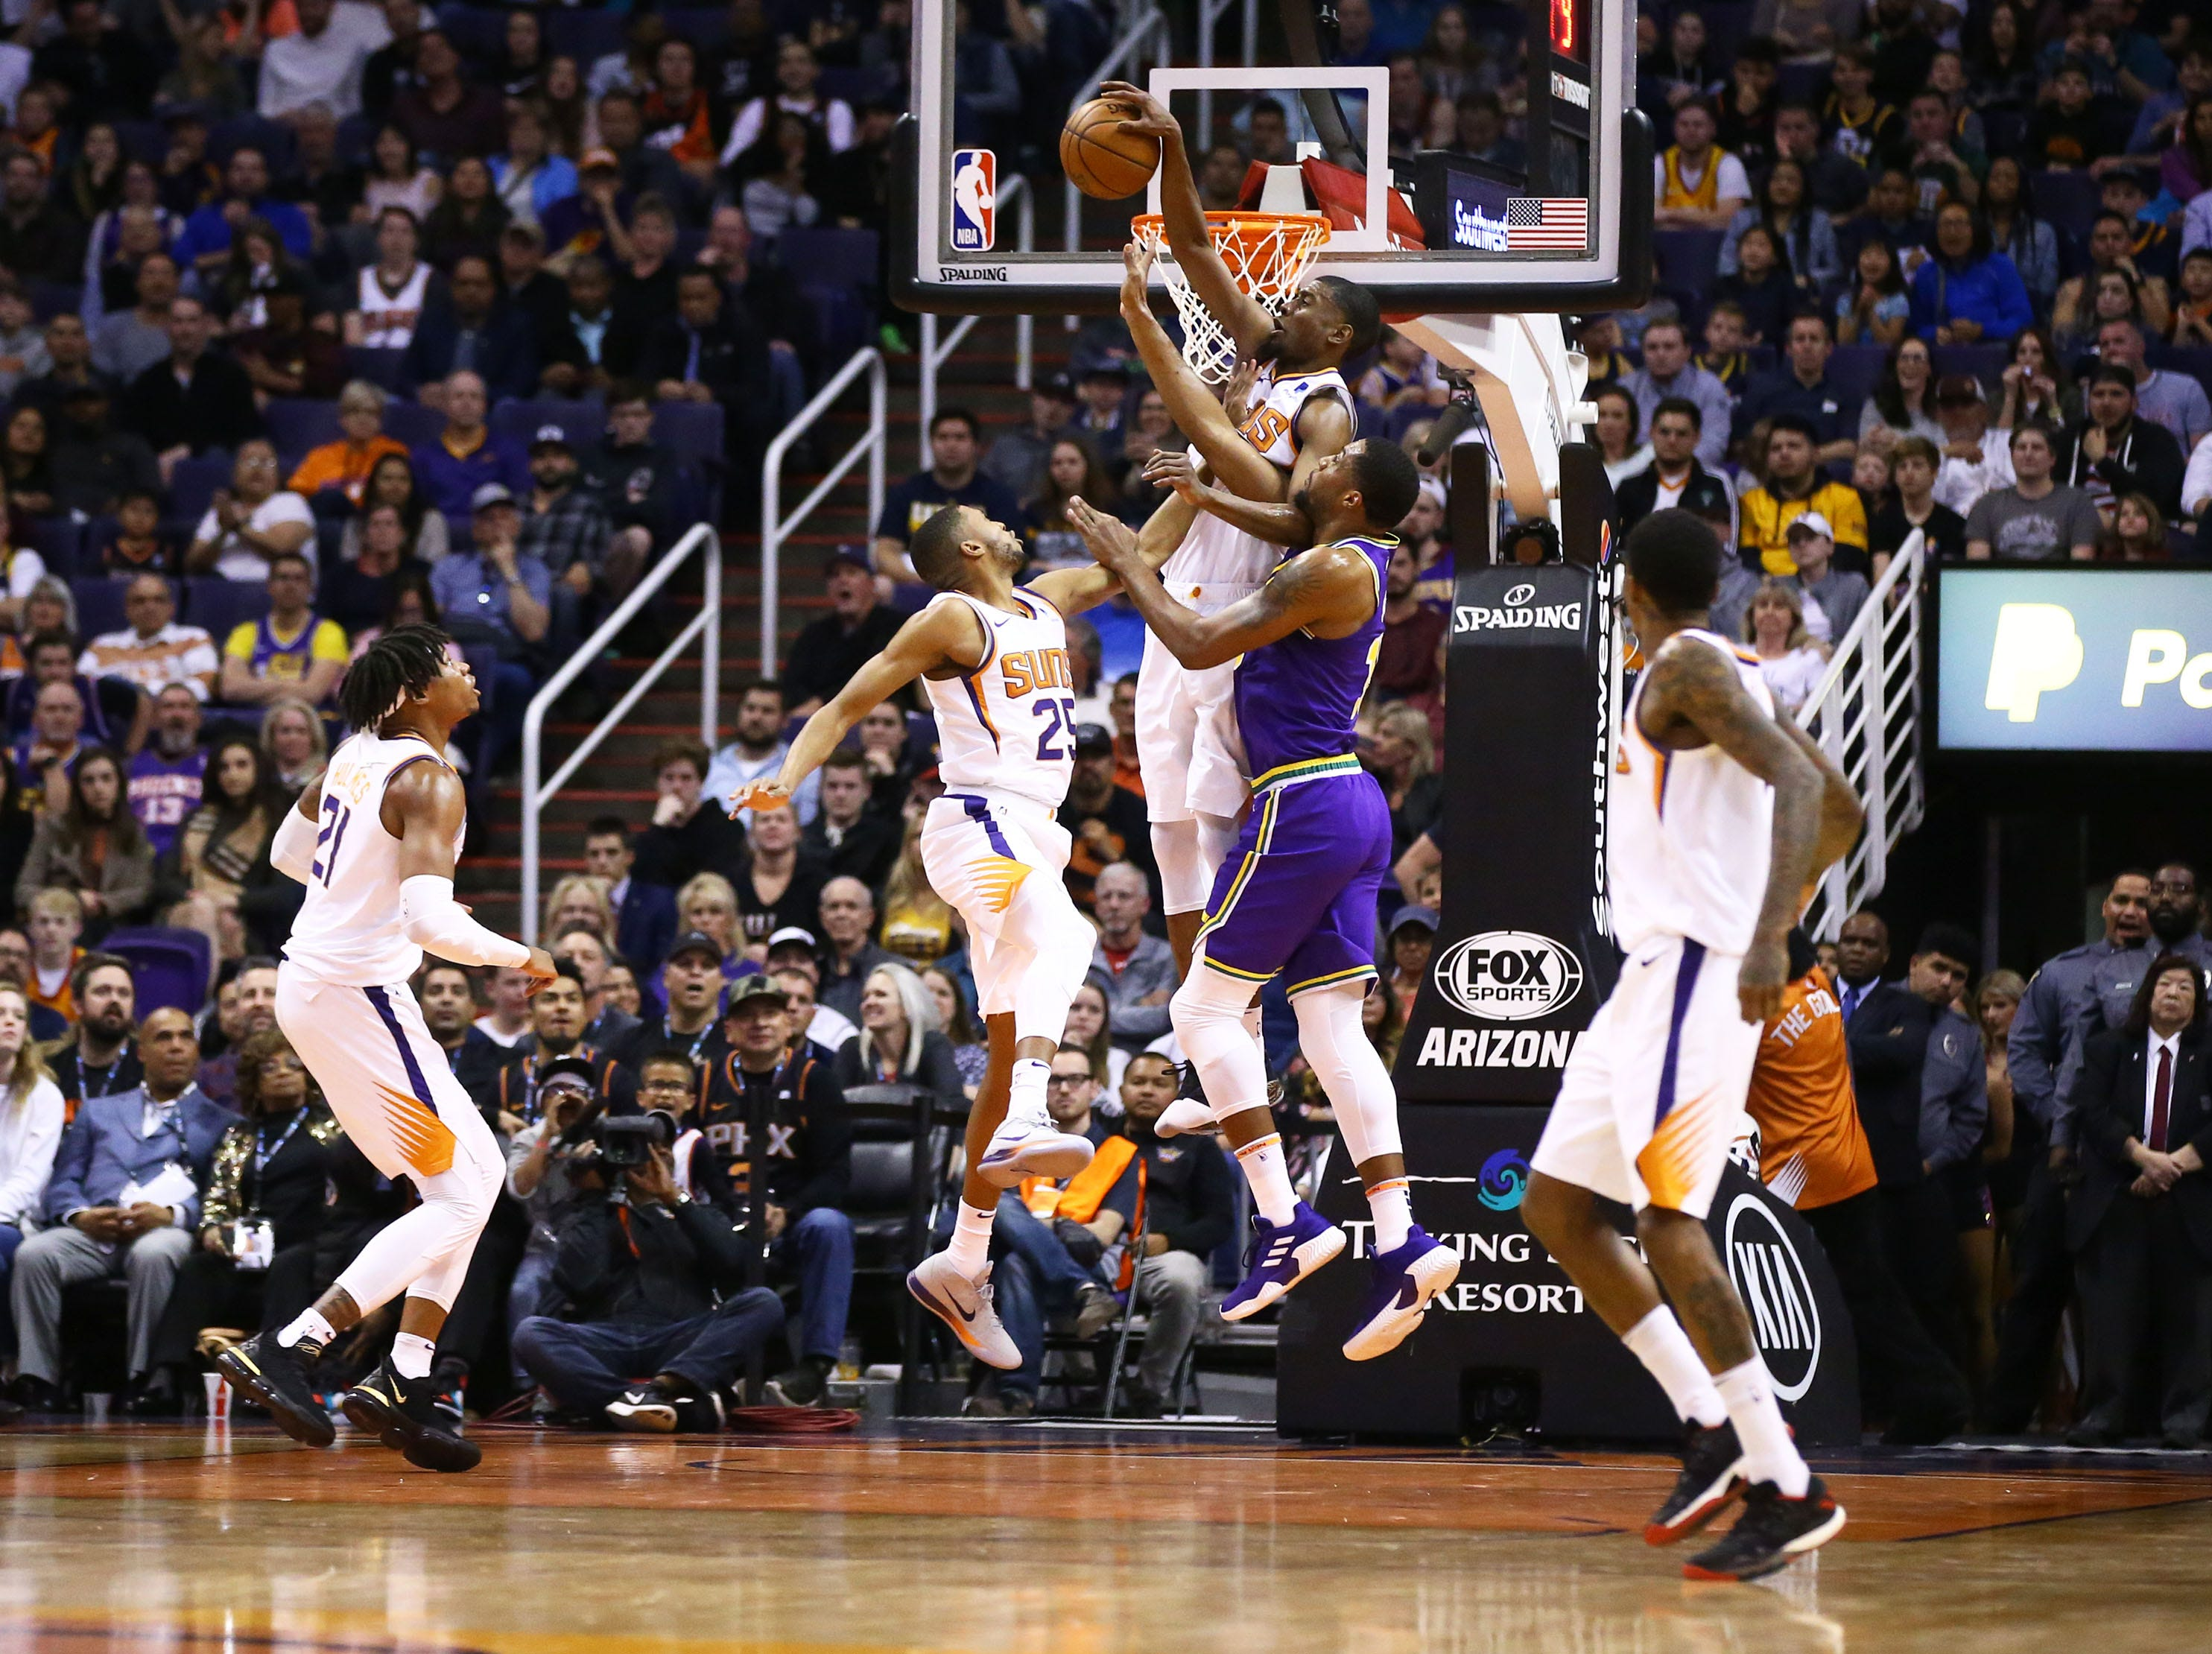 Phoenix Suns forward Josh Jackson (20) rebounds the ball against the Utah Jazz in the second half on Mar. 13, 2019 at Talking Stick Resort Arena in Phoenix, Ariz.